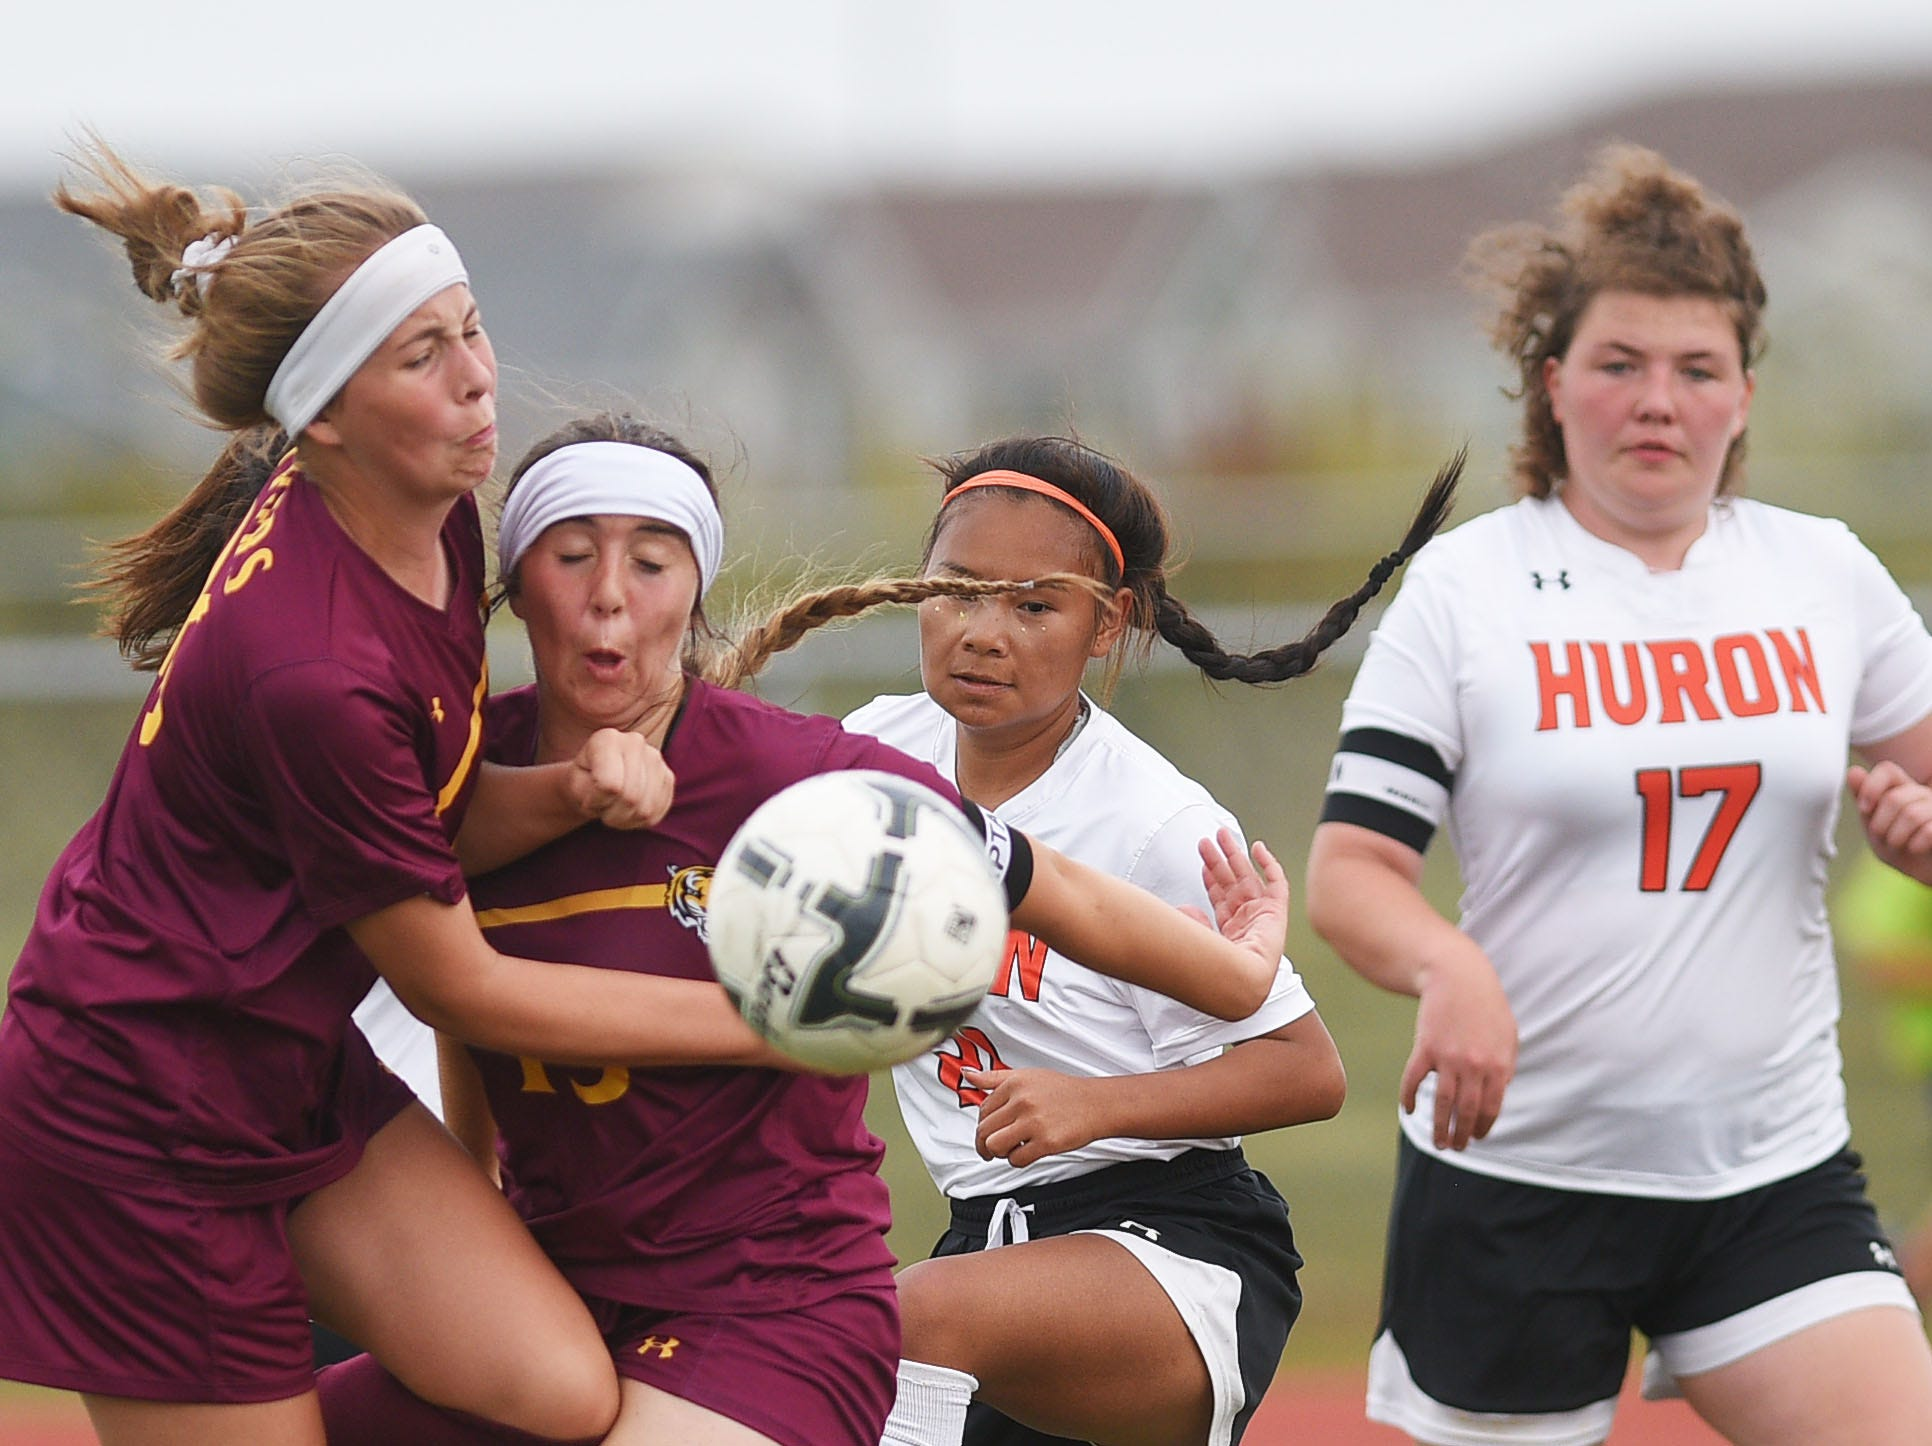 Harrisburg's Paige Wood, from left, Lily Petersen, Huron's Paw Tar Hsu and Shelbey Hershman try to gain control off the ball Thursday, Sept. 13, at Harrisburg.